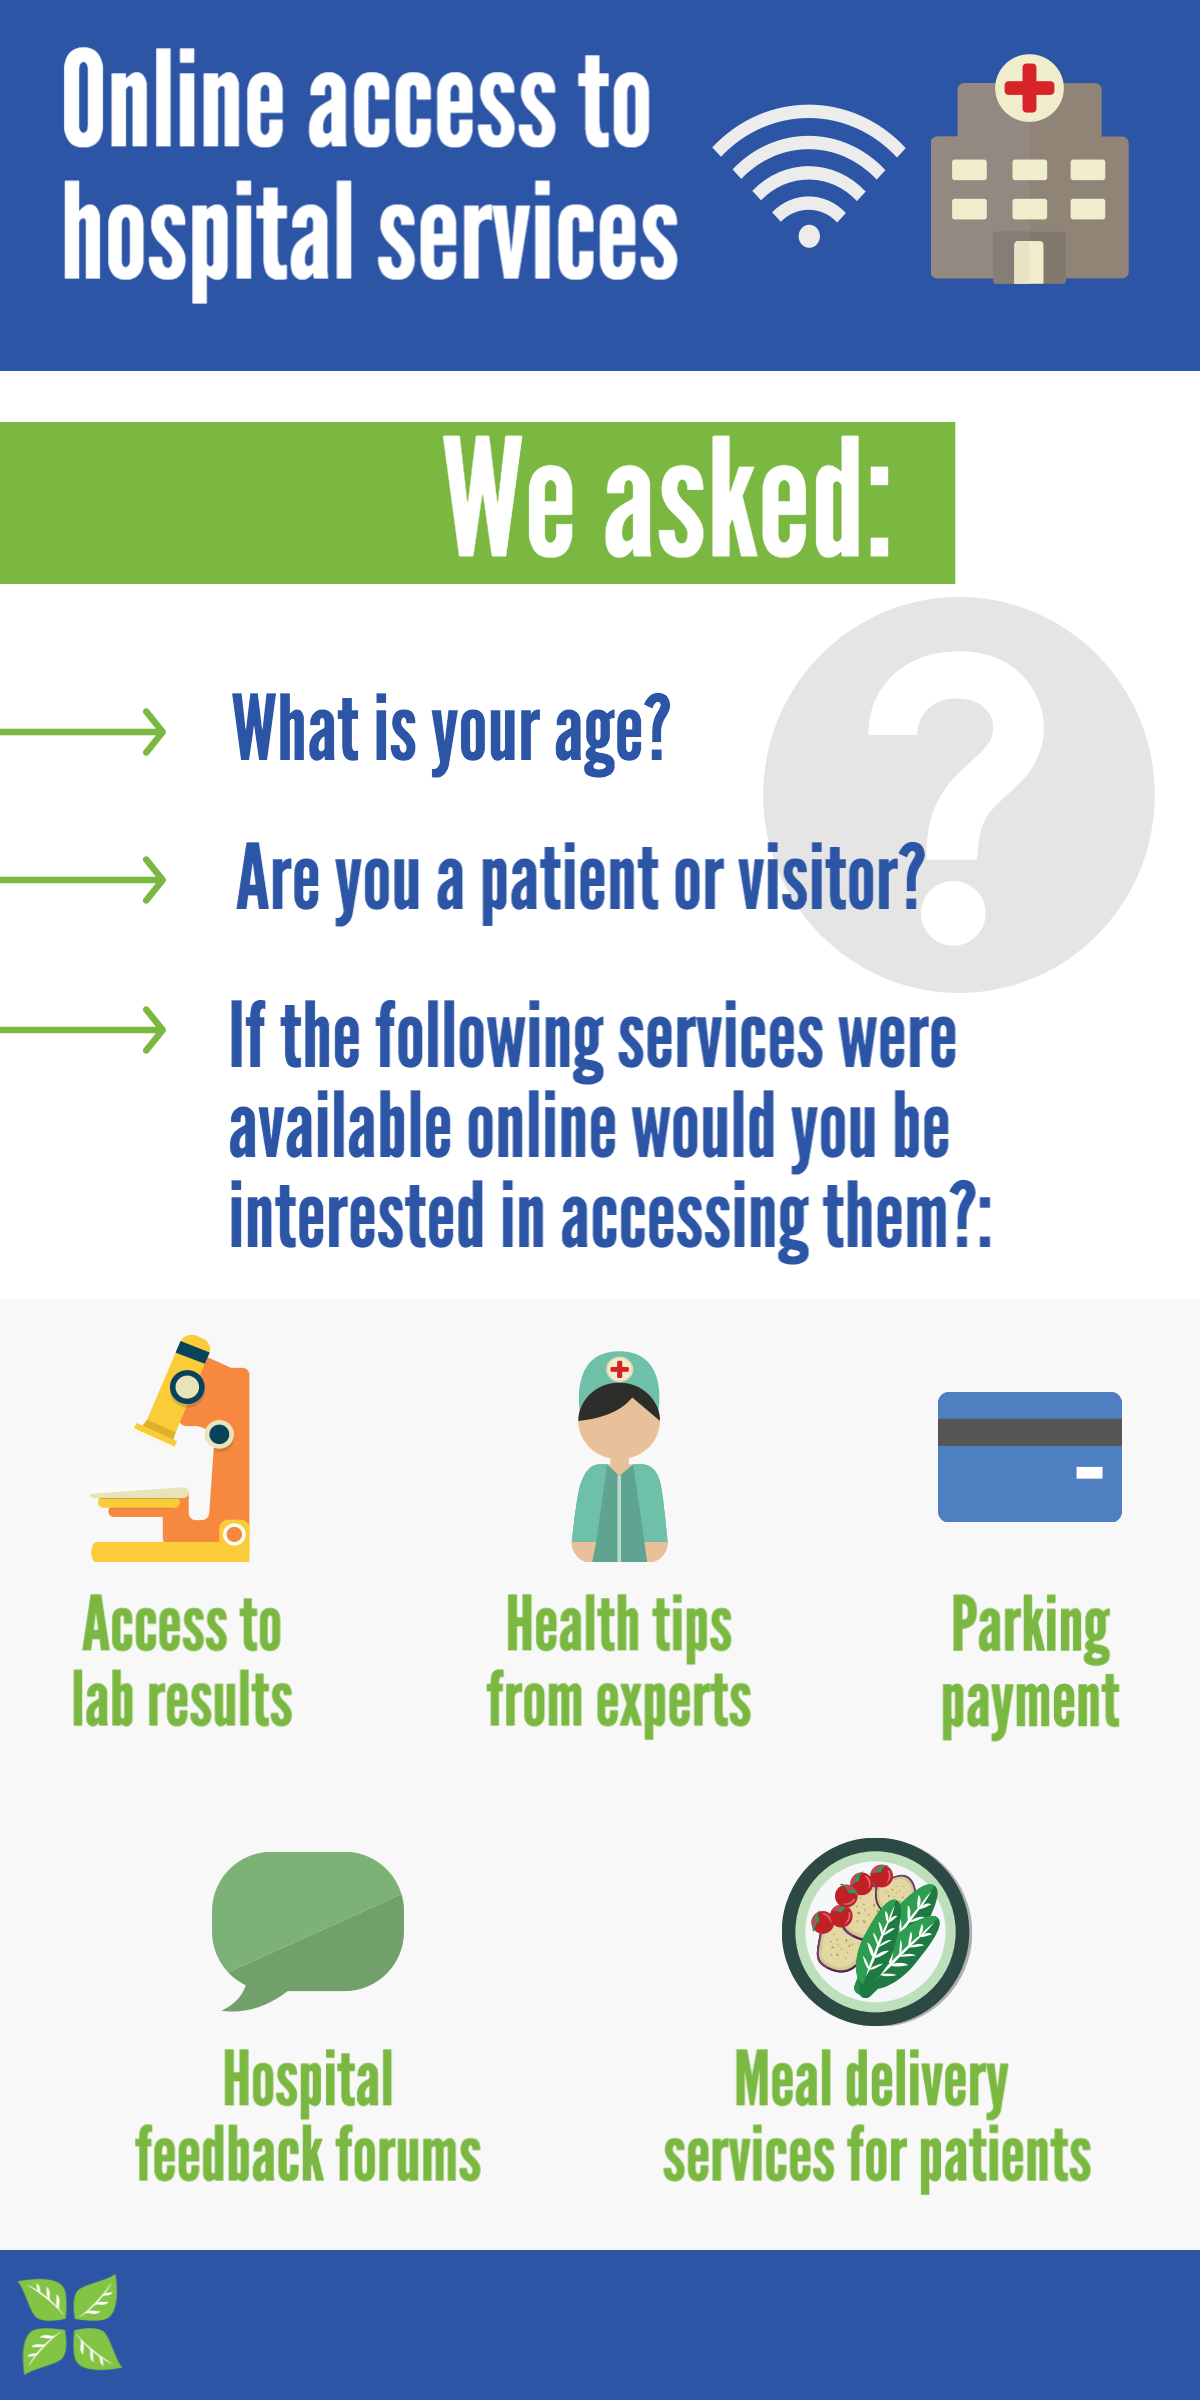 Online access to hospital services survey. Accessible text follows.